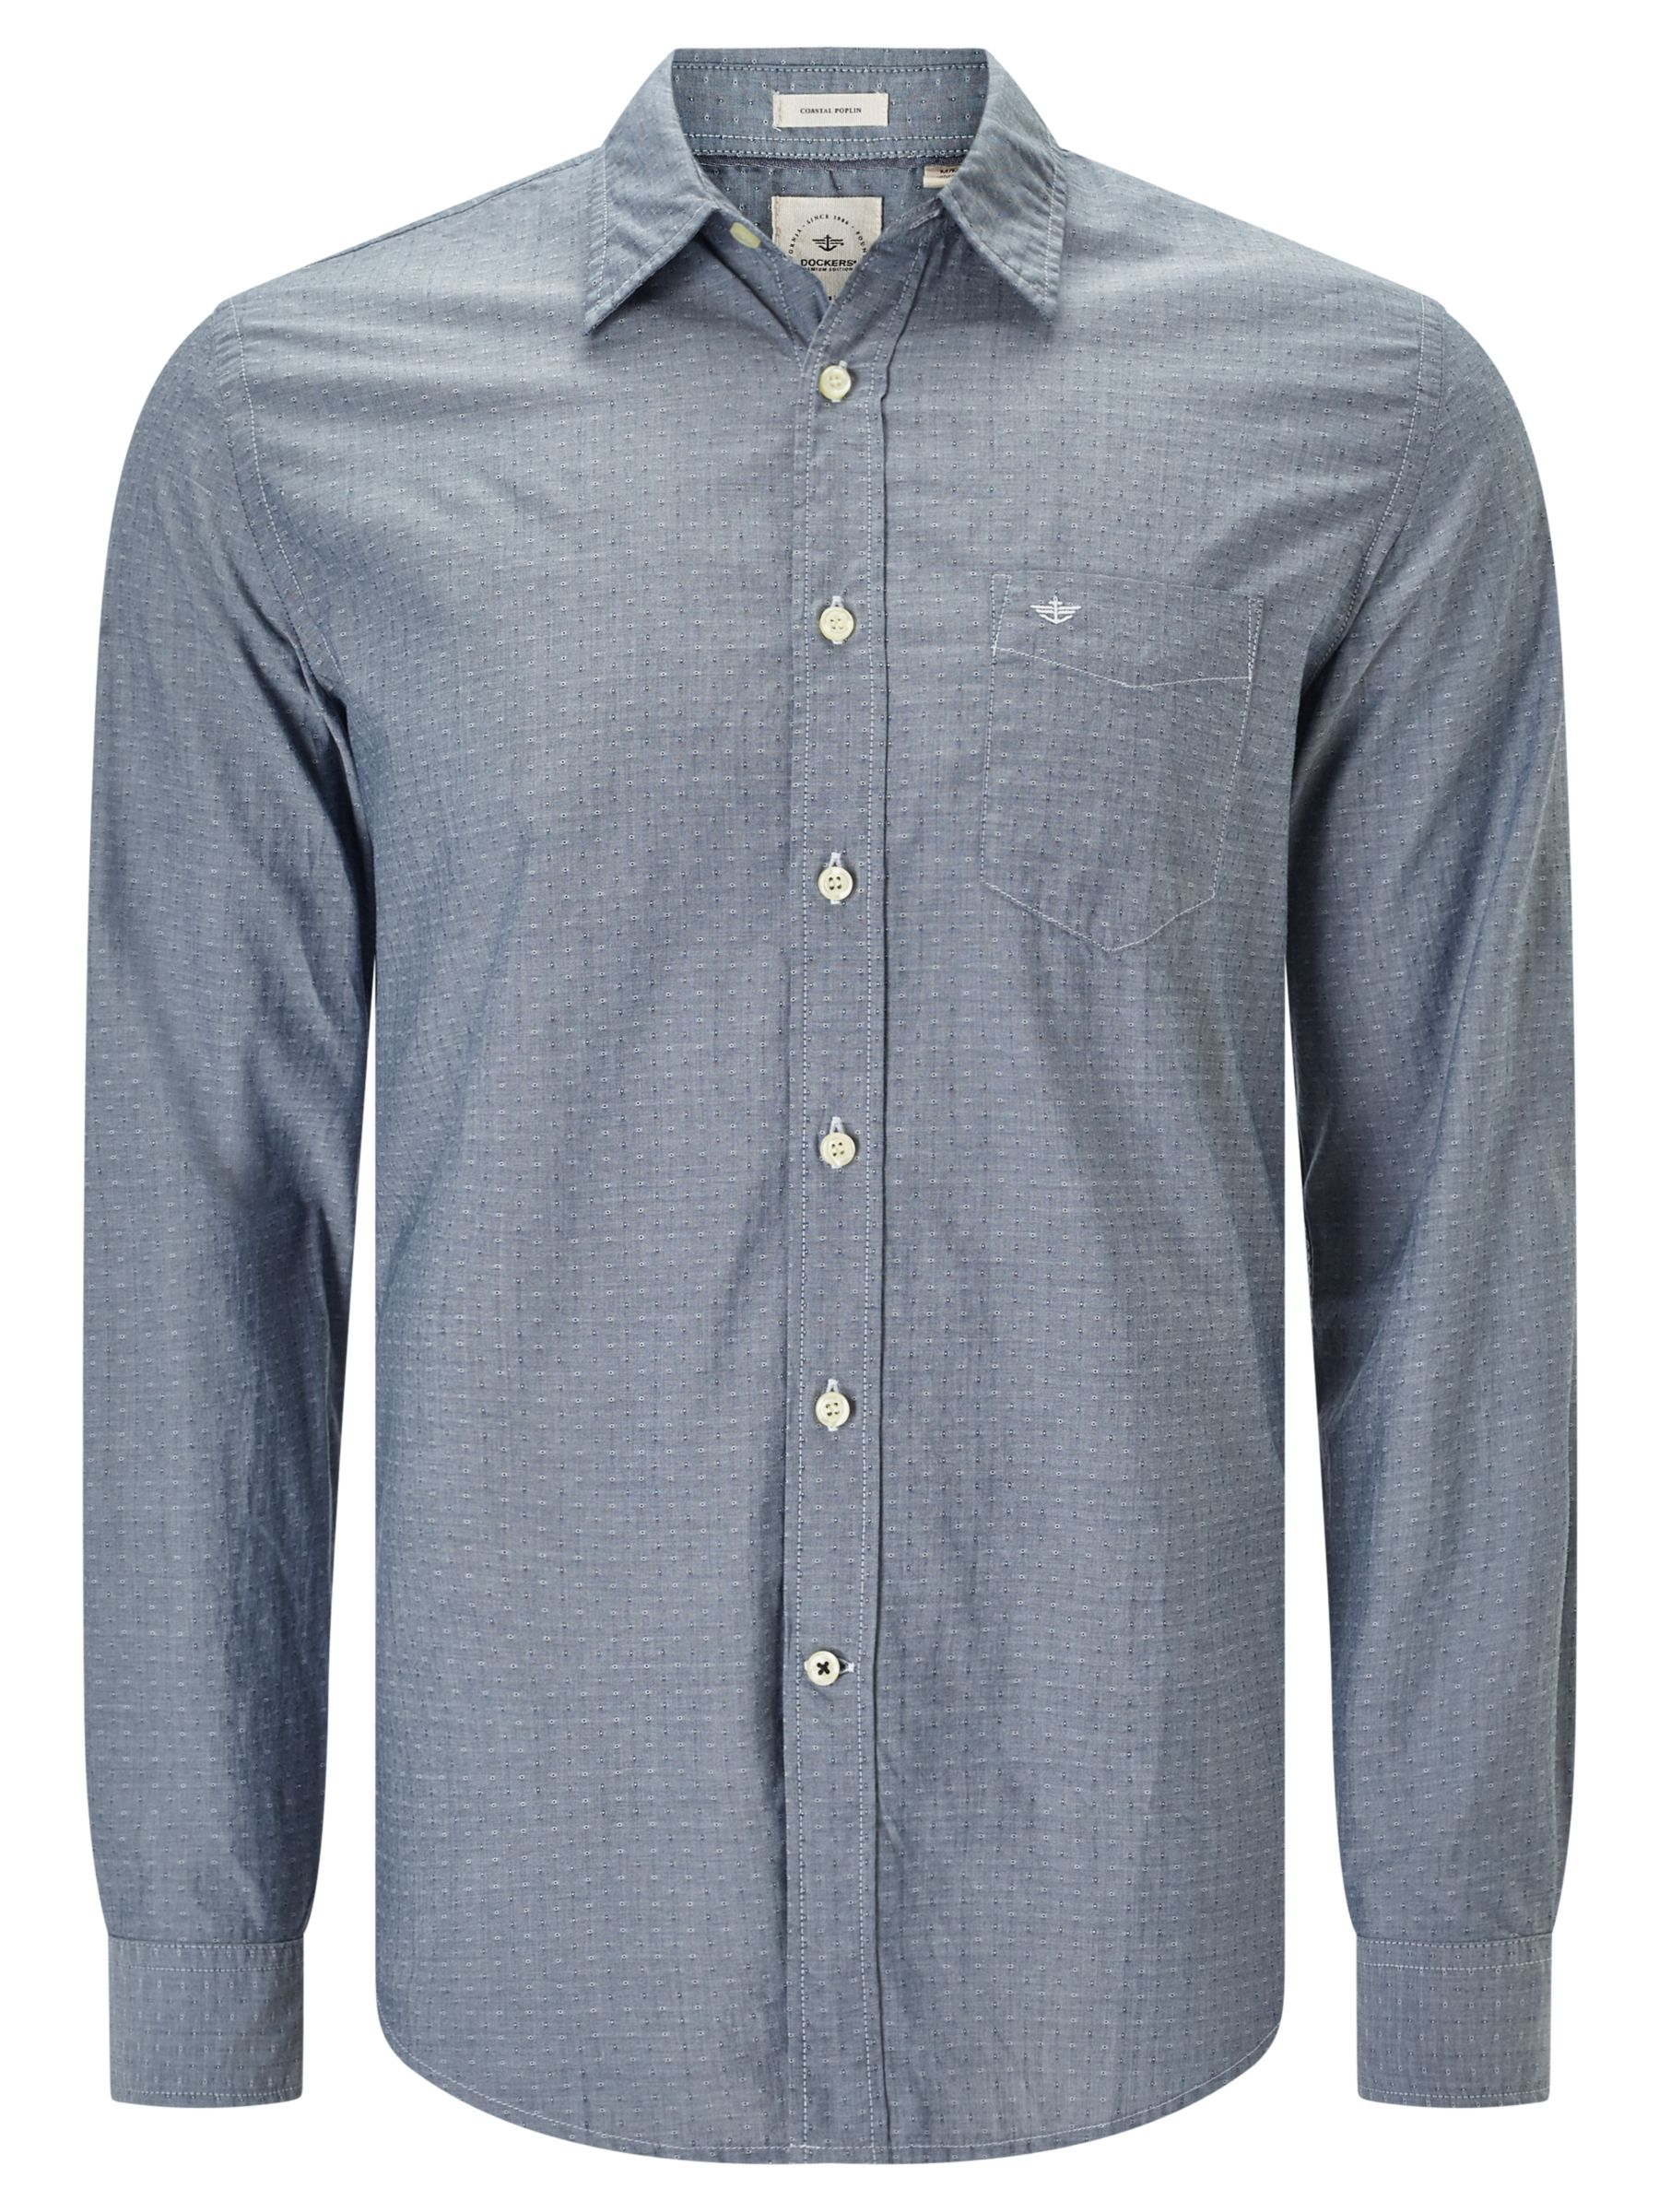 Dockers Dockers Laundered Poplin Cotton Shirt, Huff Moonlit Ocean